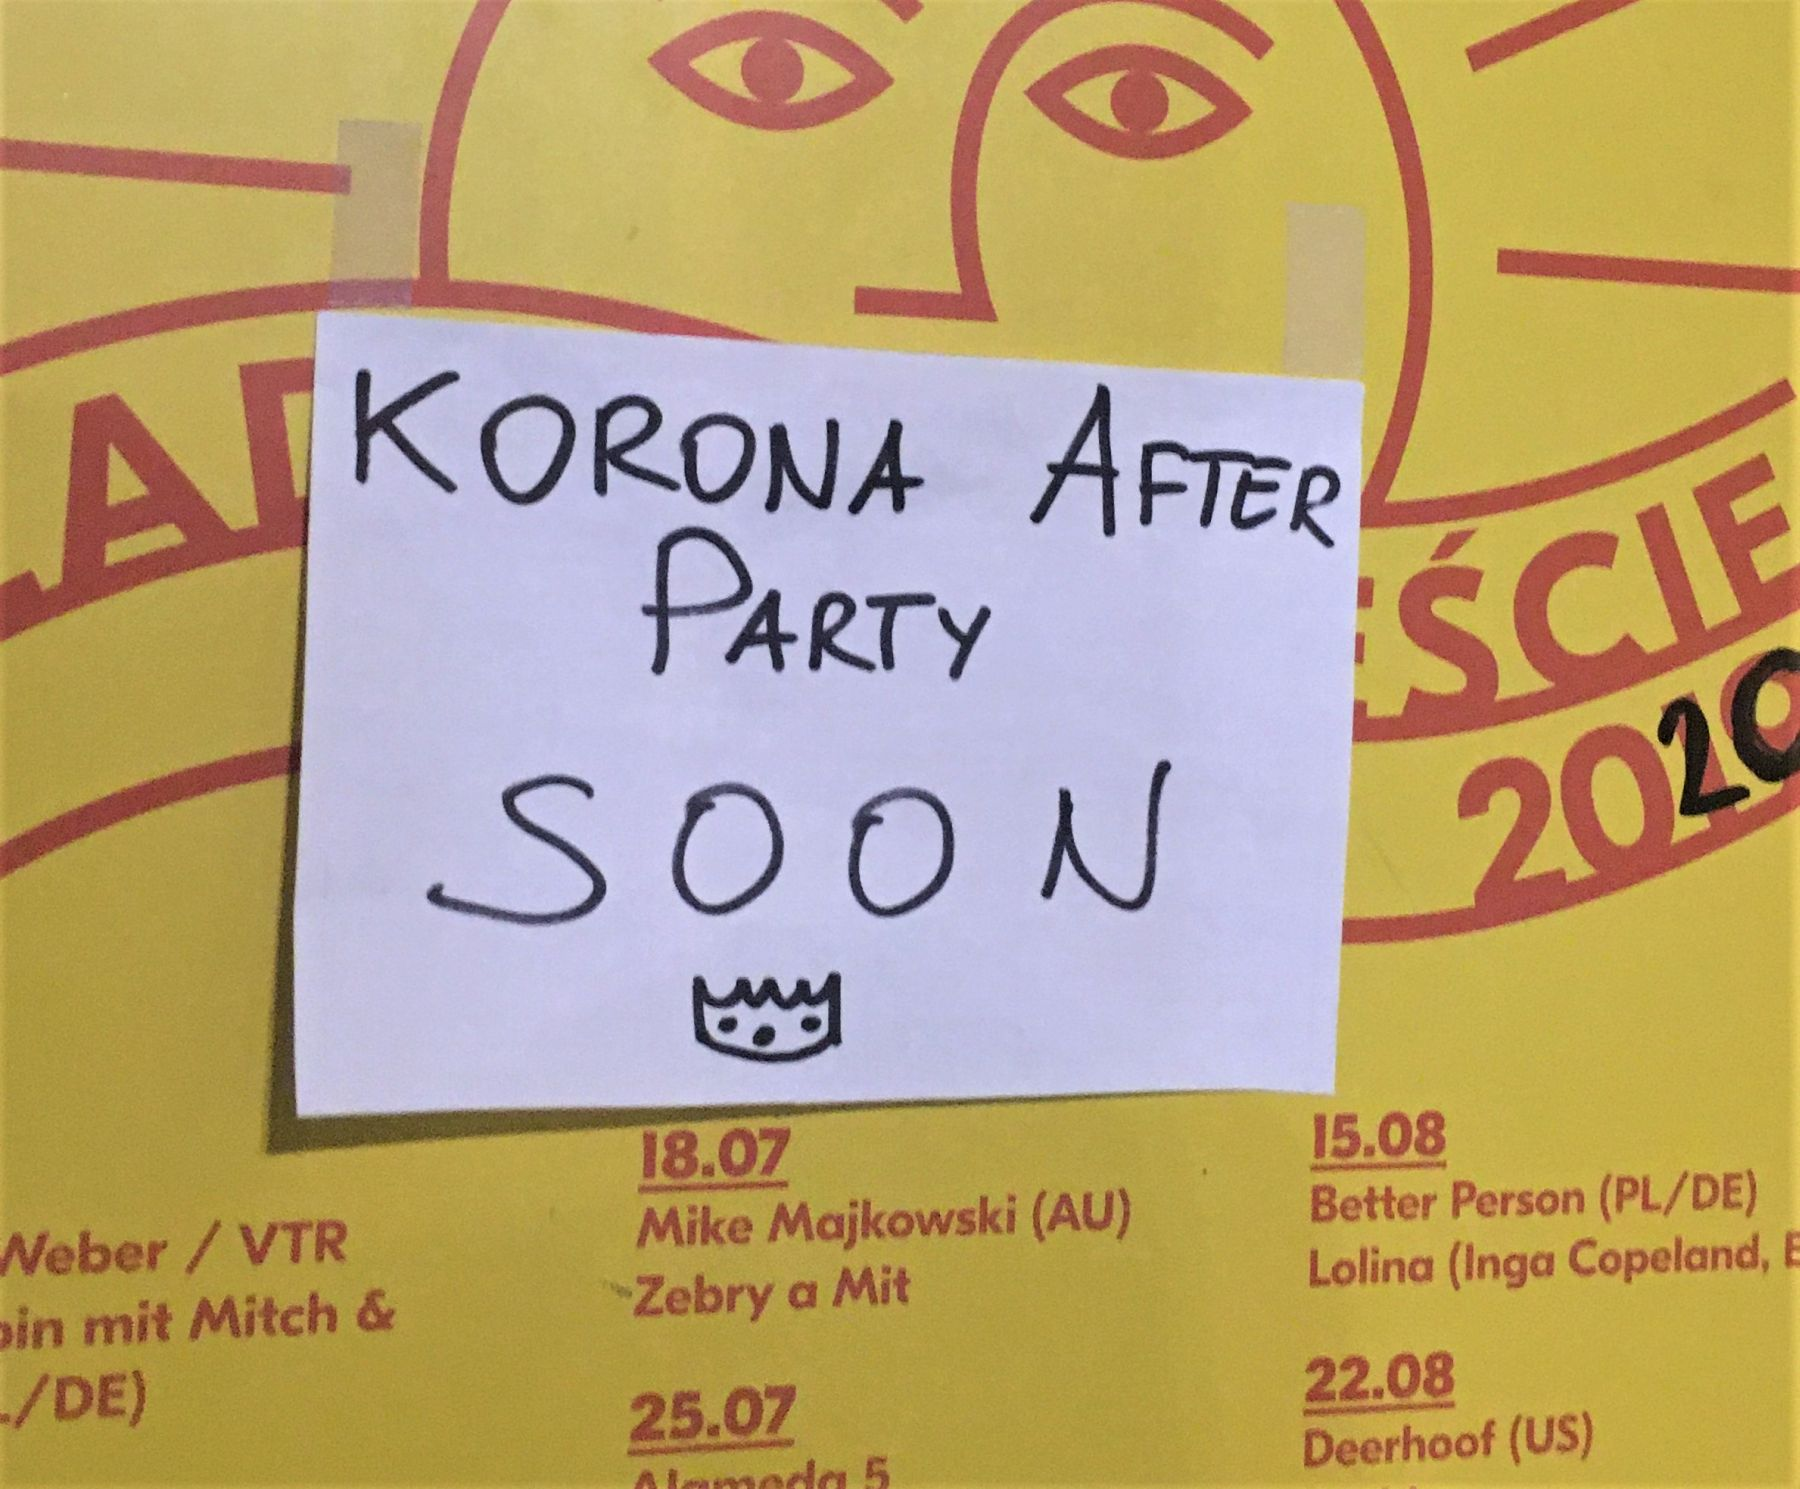 korona after party